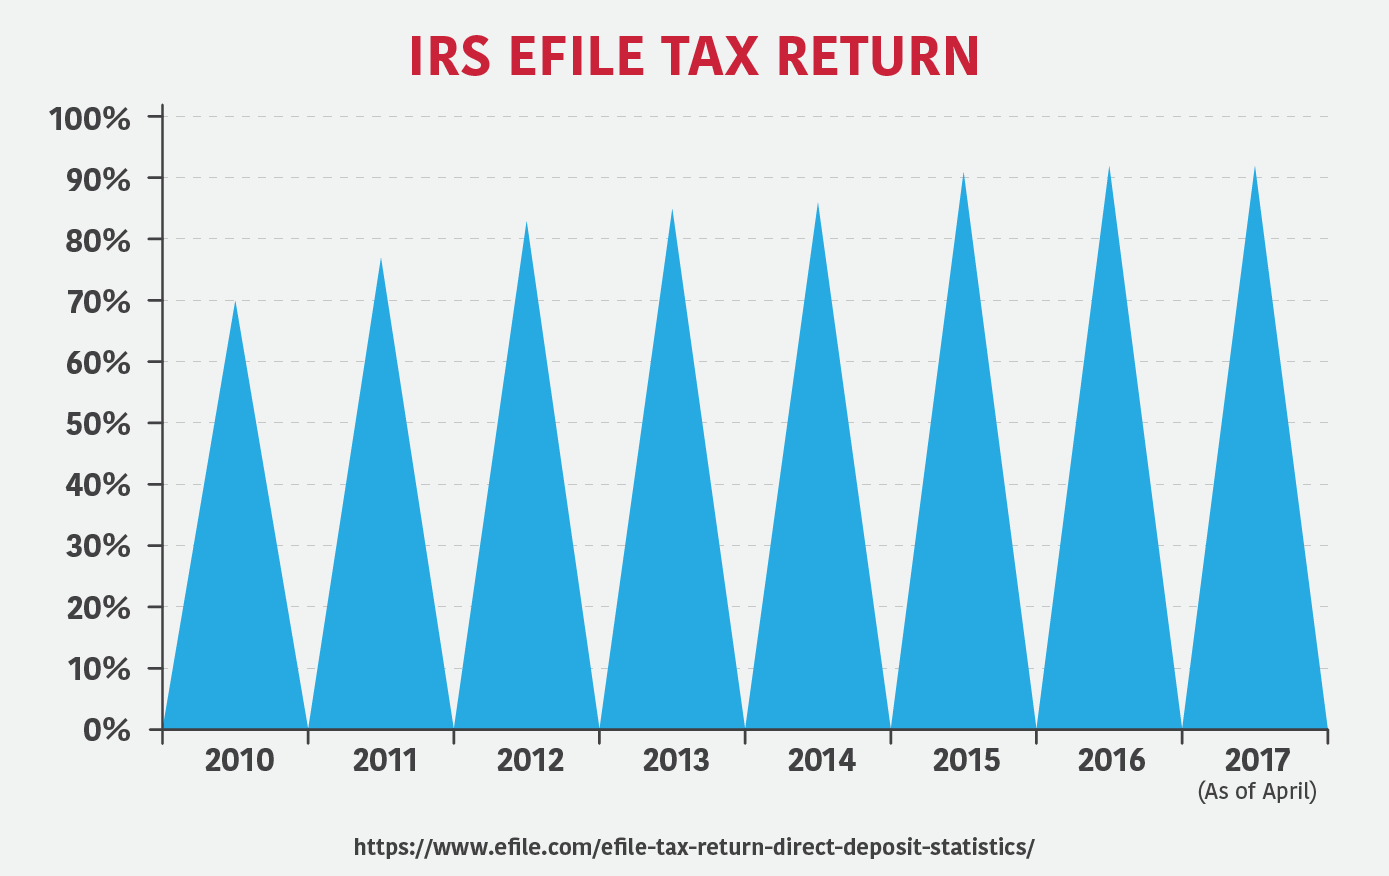 IRS Efile Tax Return Numbers